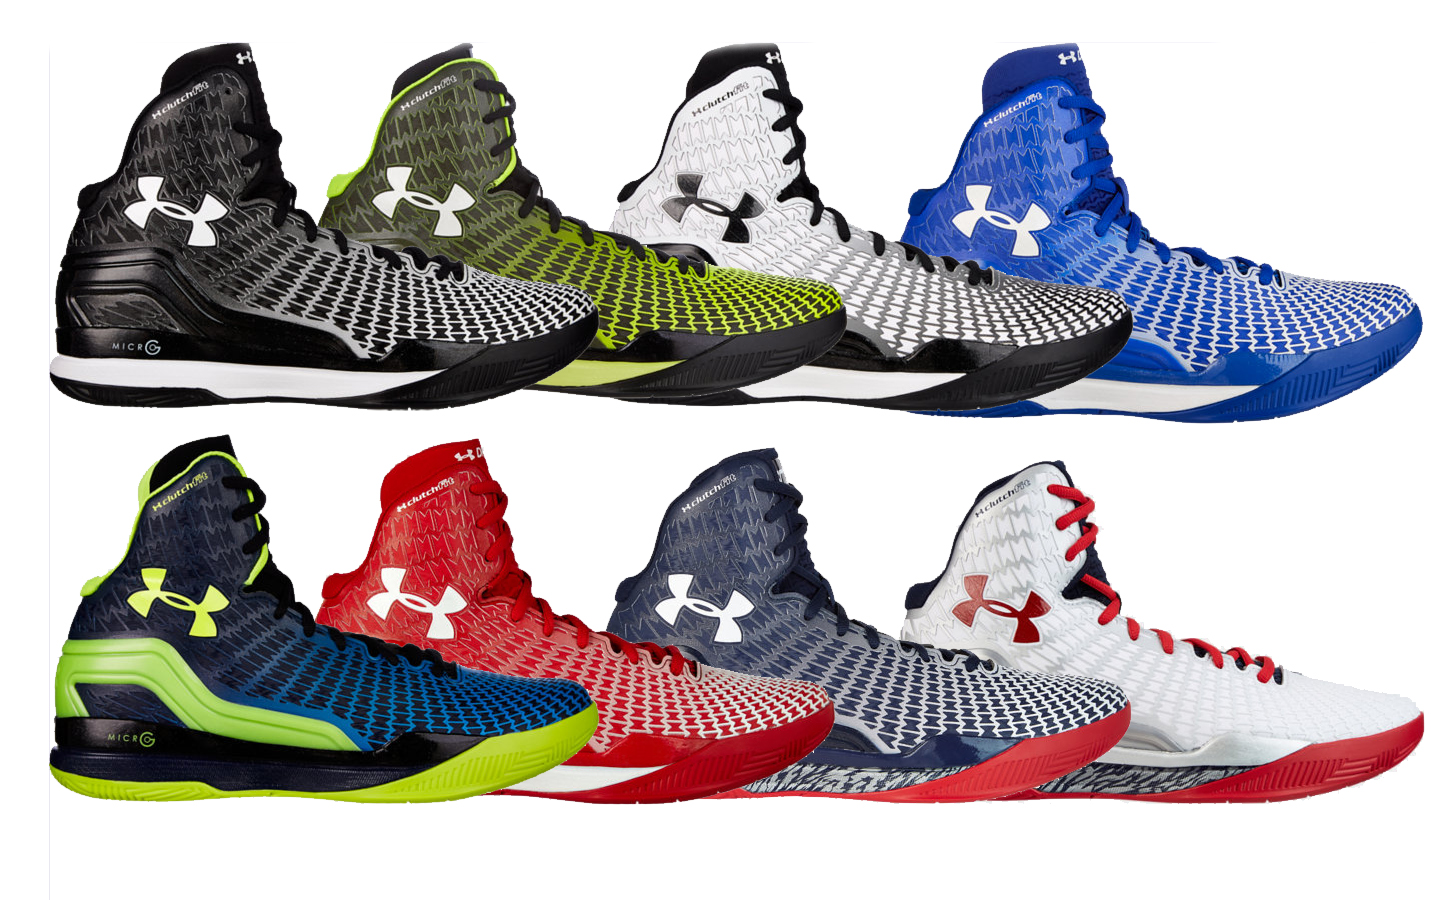 stephen curry shoes 2014 under armour wwwpixsharkcom